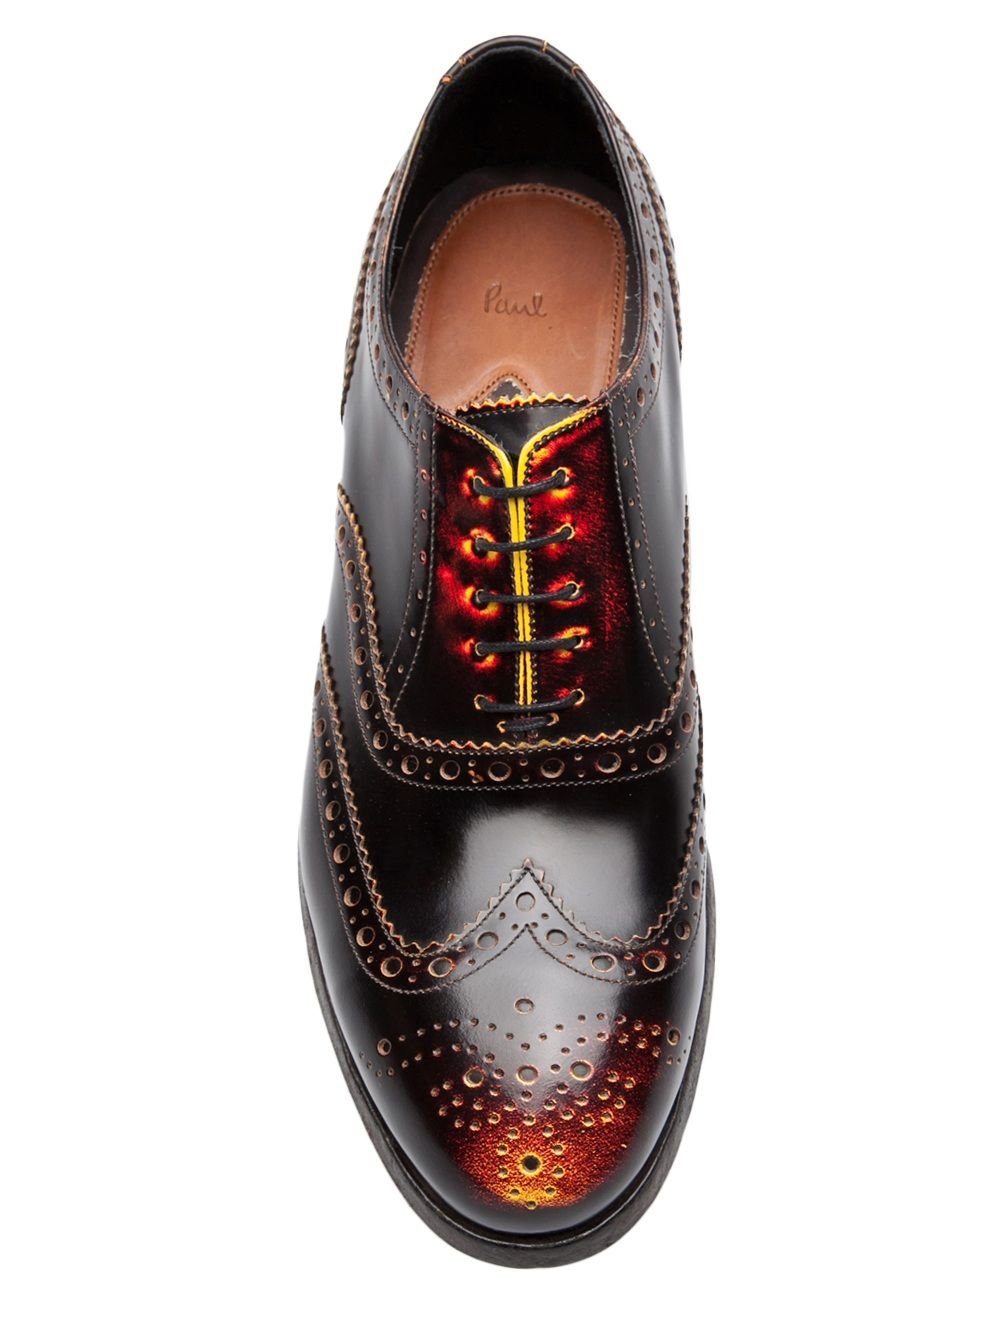 0c90f9897 Paul Smith Wing Tip Shoe - Traffic Men - Farfetch.com